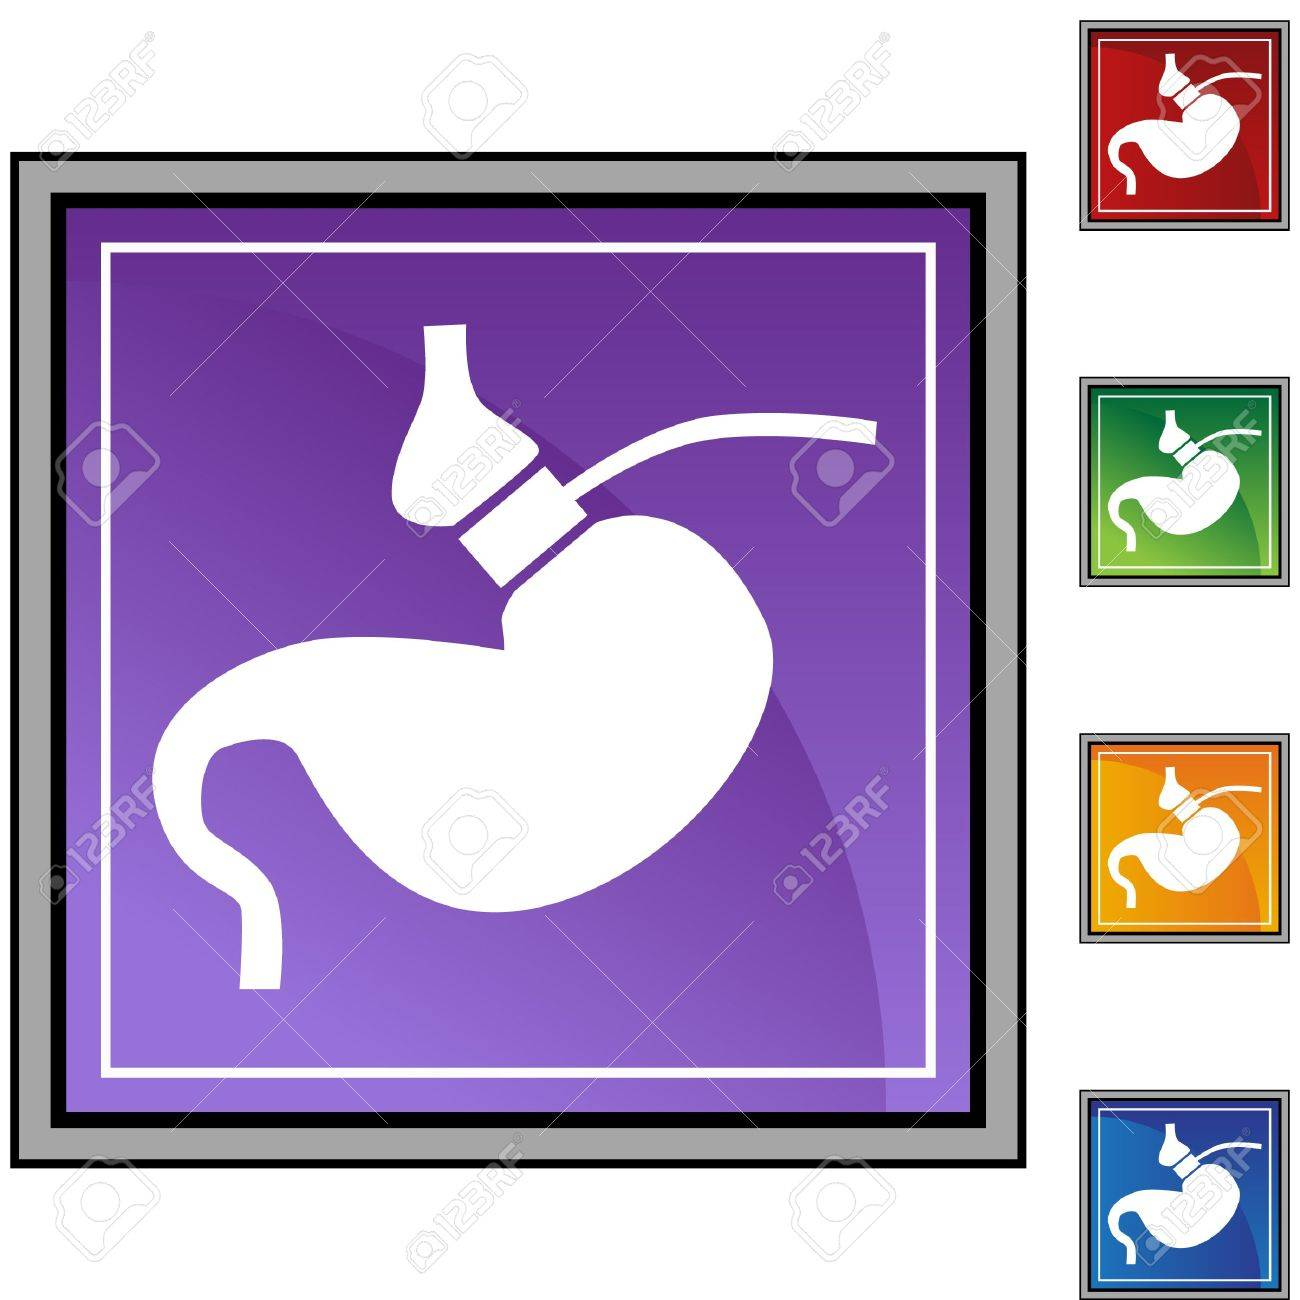 Gastric Bypass Stock Vector - 6830115